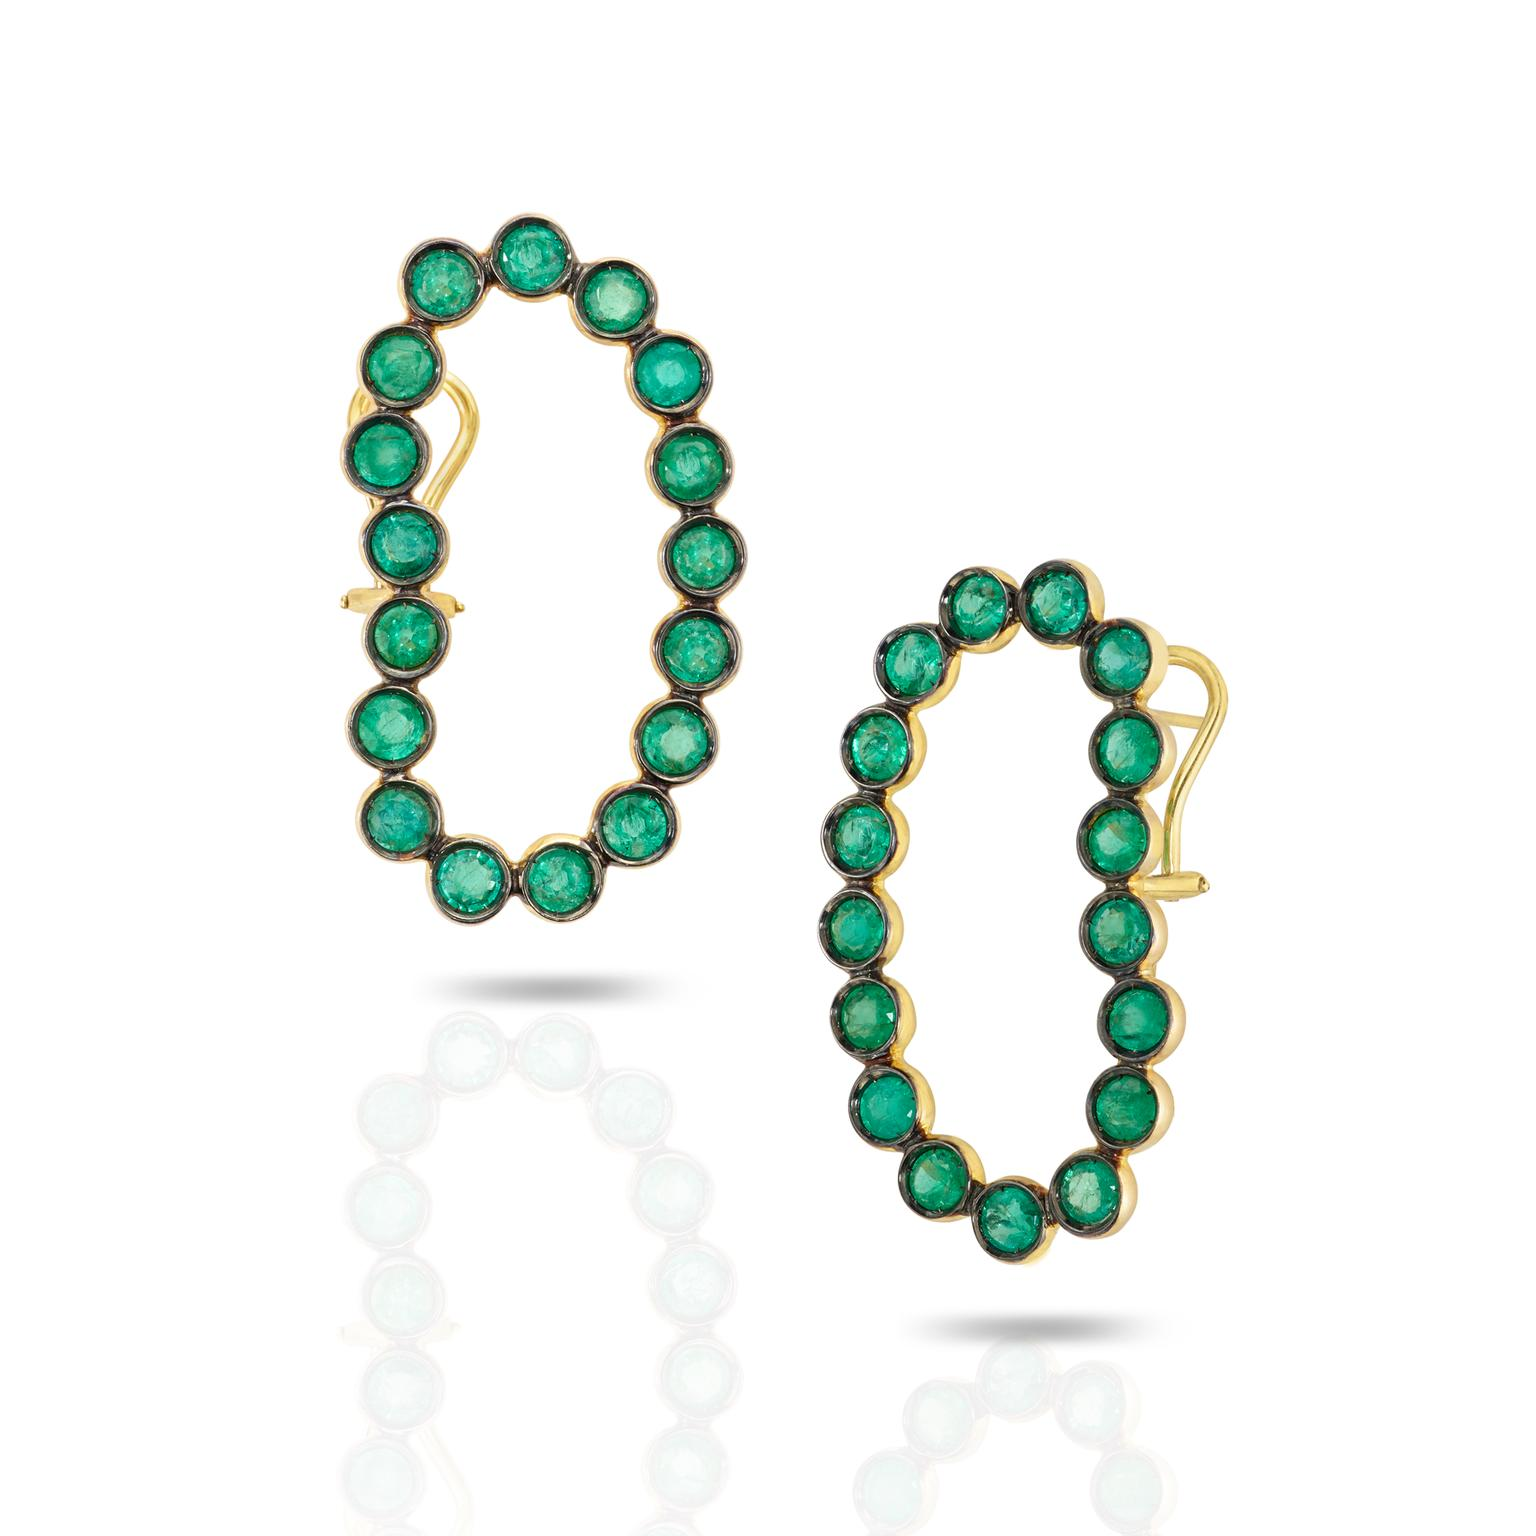 Ana Khouri Lourdes emerald earrings